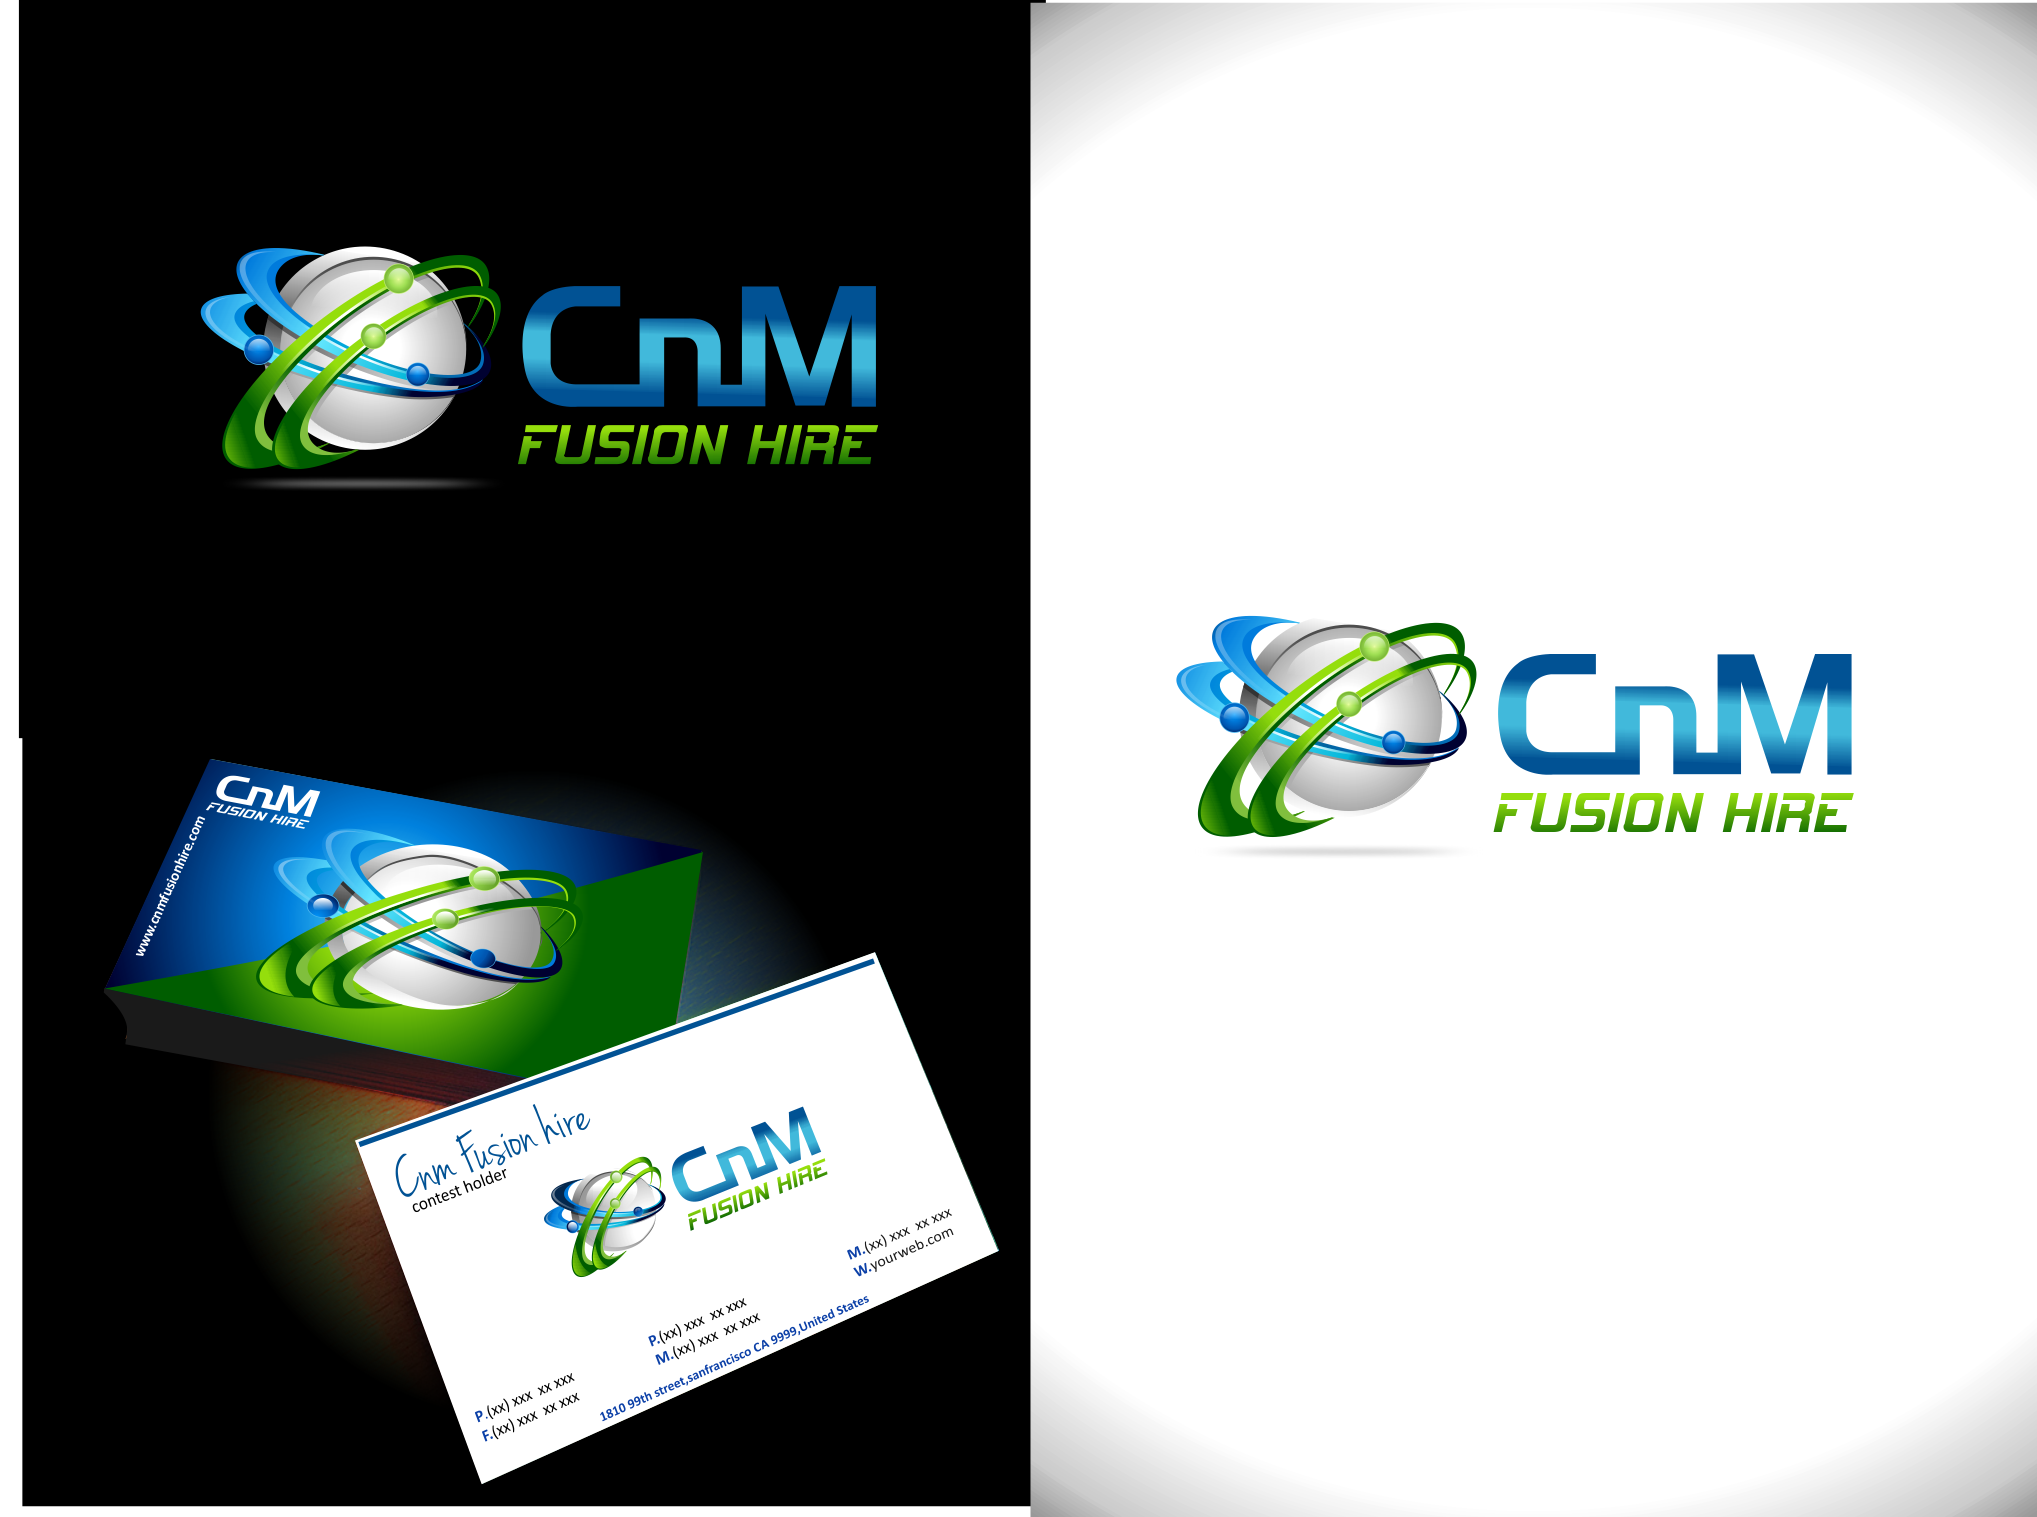 New logo wanted for Cnm Fusion hire